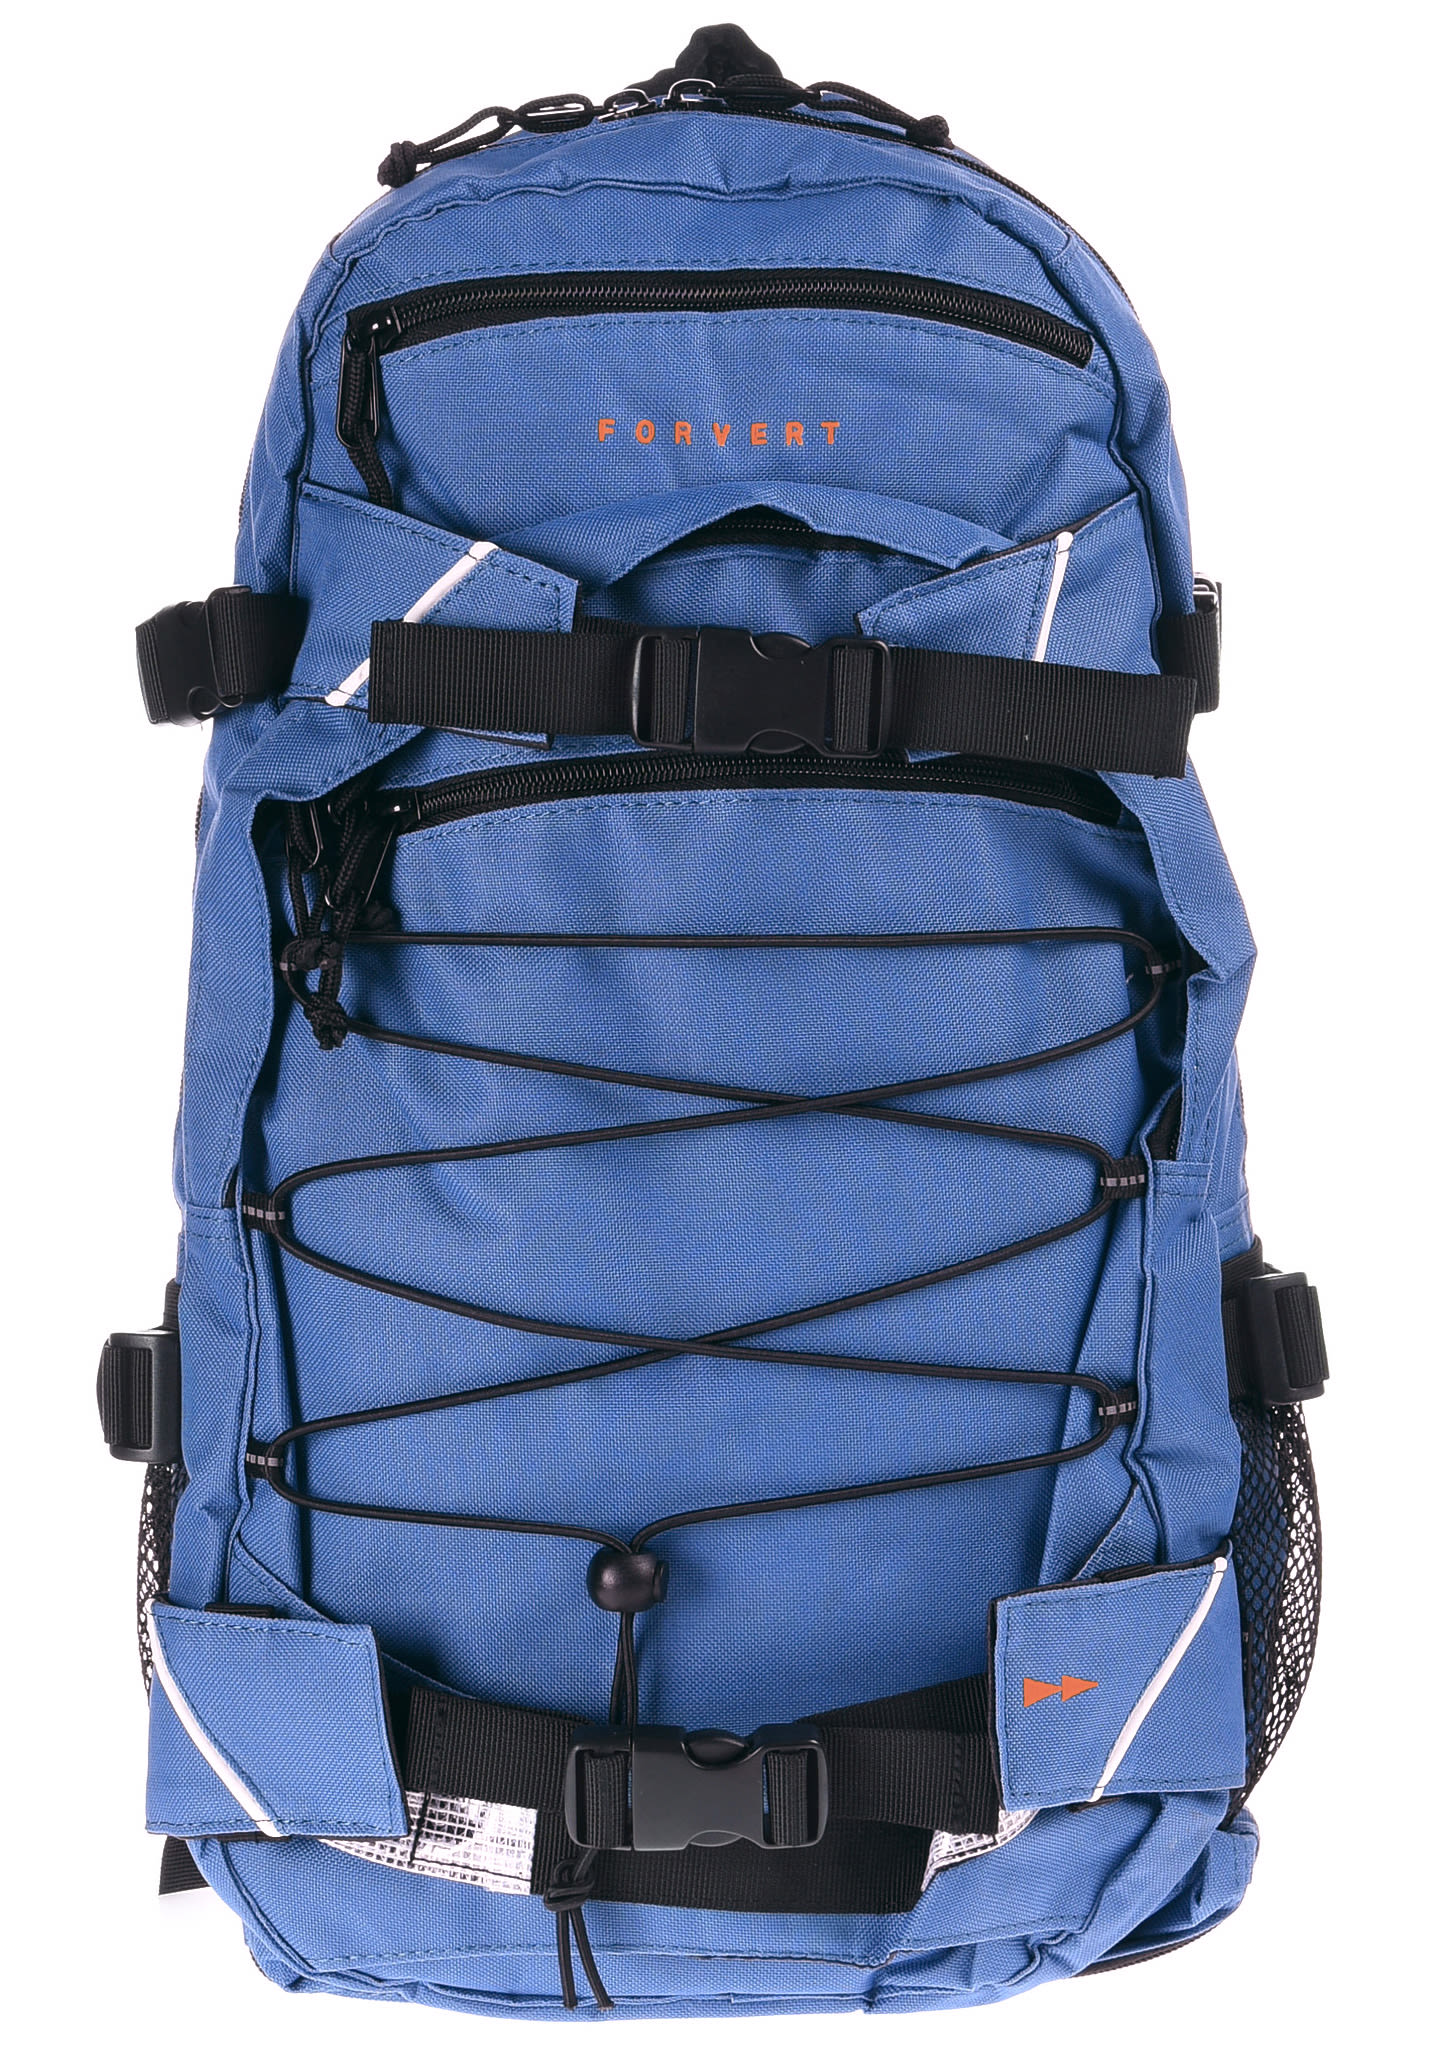 7adc3c3133425 FORVERT Louis 20L - Backpack - Blue - Planet Sports